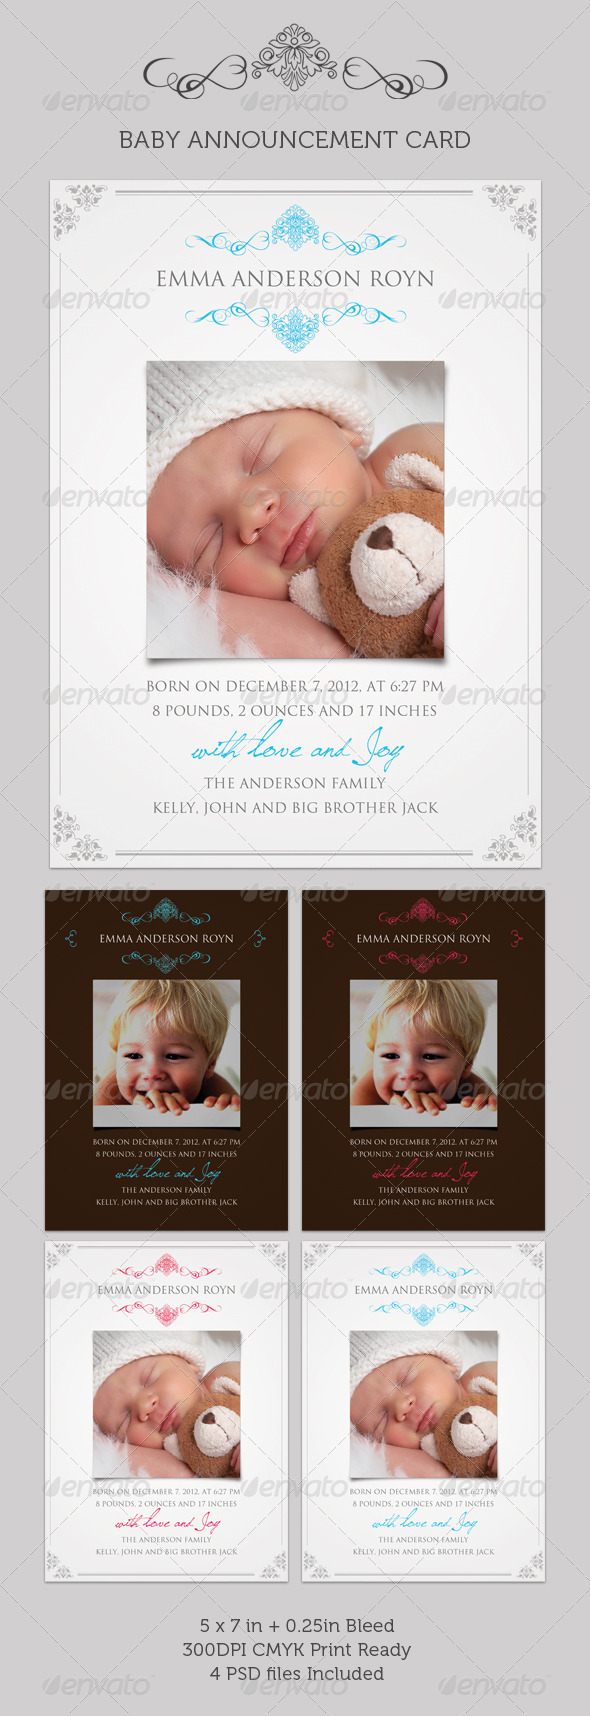 Boy/Girl Baby Announcement Card 02 - Family Cards & Invites